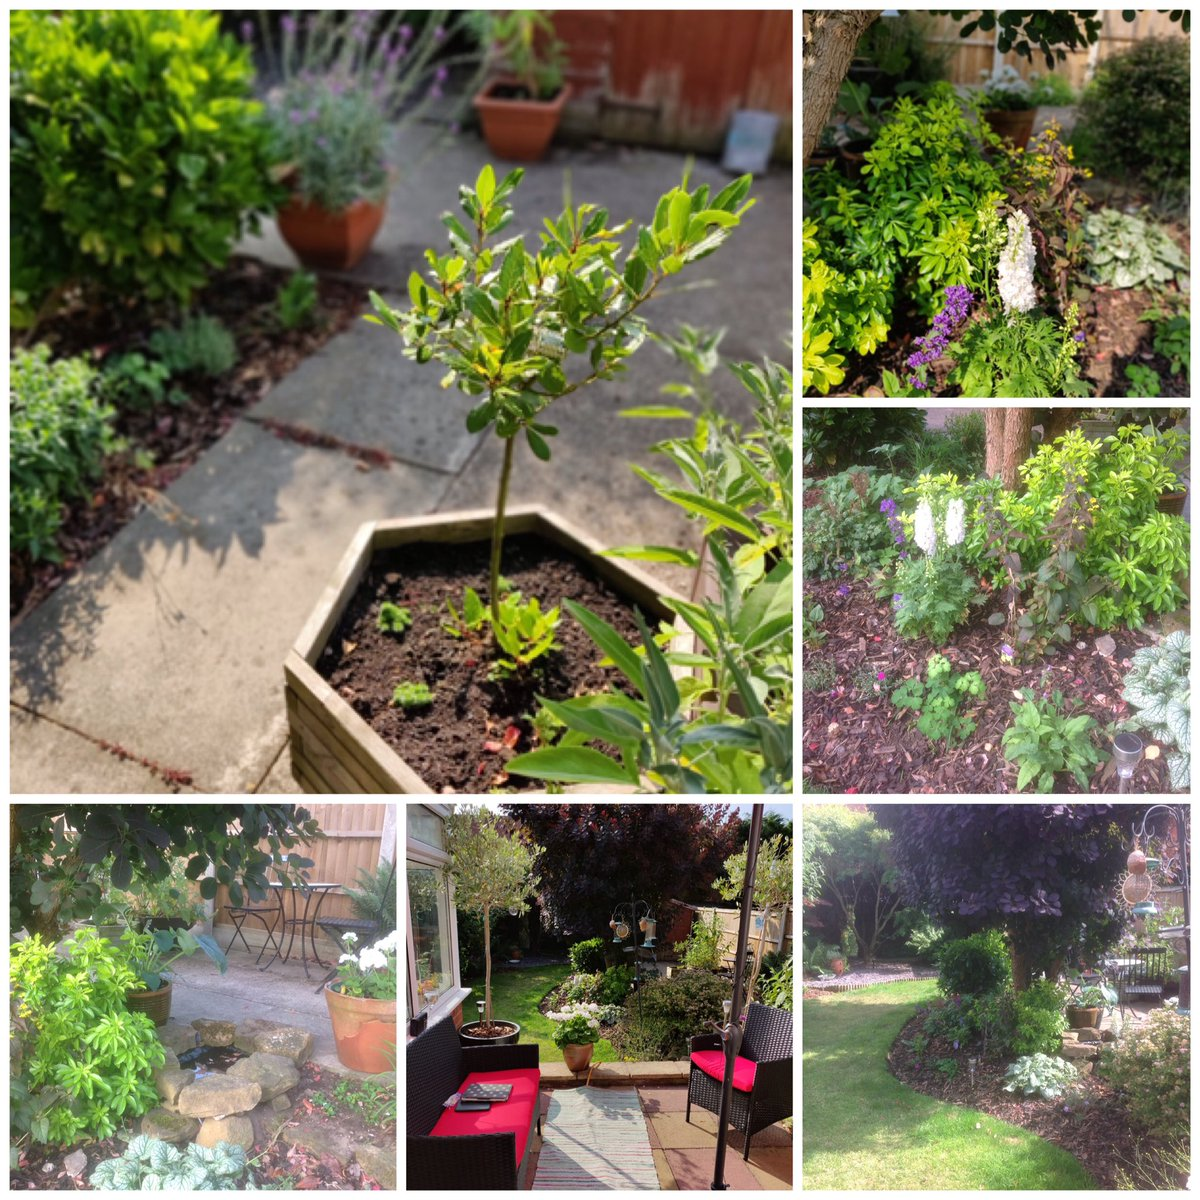 In Gardening Private Ho Es And Public They Are Not Needed My Small Budget Garden Is All Natural Beefriendlypic Twitter Opevwranag